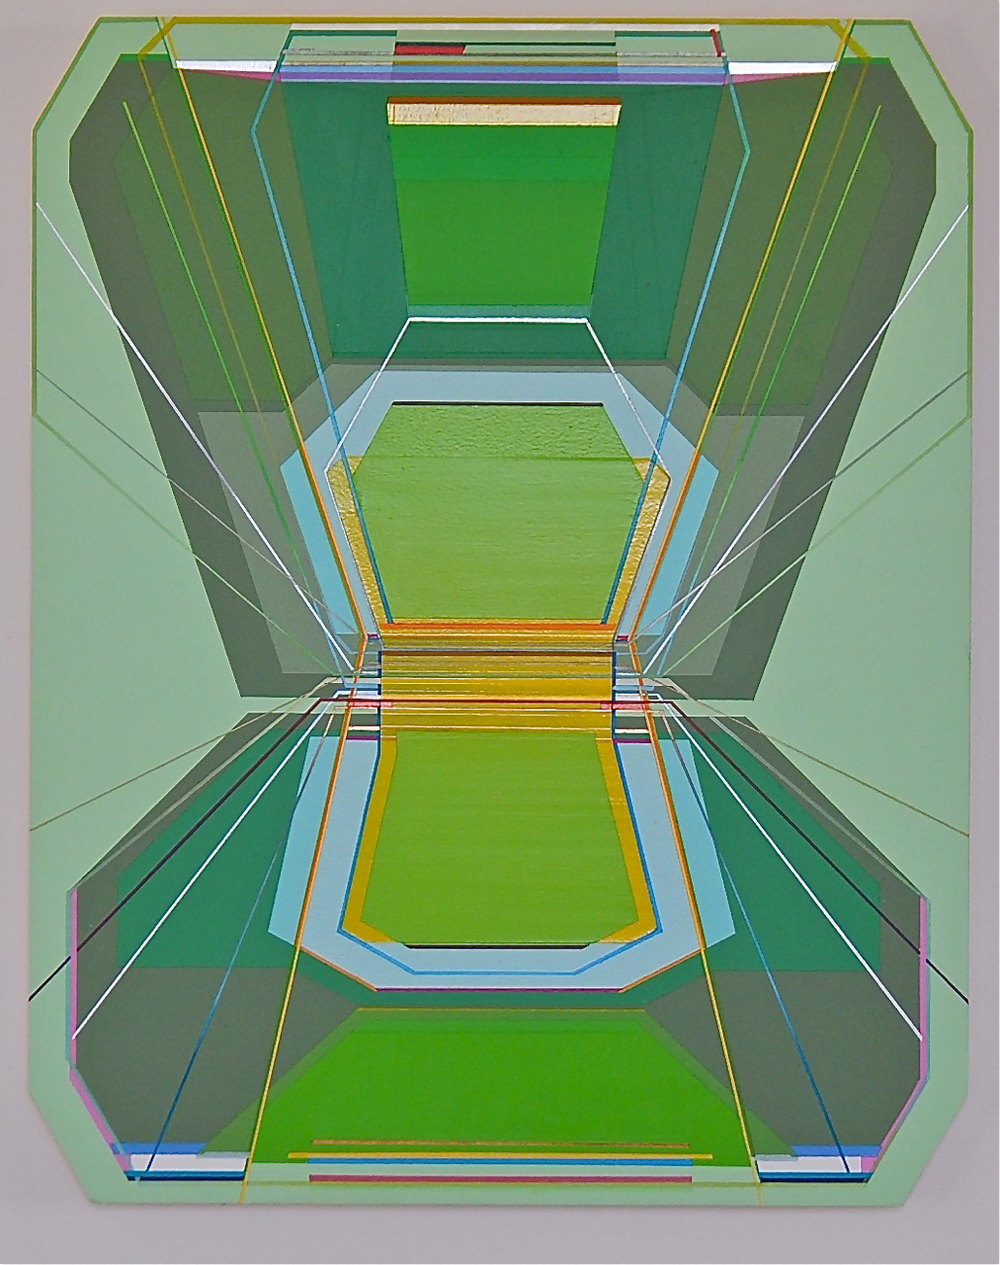 "Jason Gubbiotti  Groom's Lake , 2015 Acrylic on wood panel 19 5/8"" x 15.5"" Courtesy of Civilian Art Projects"